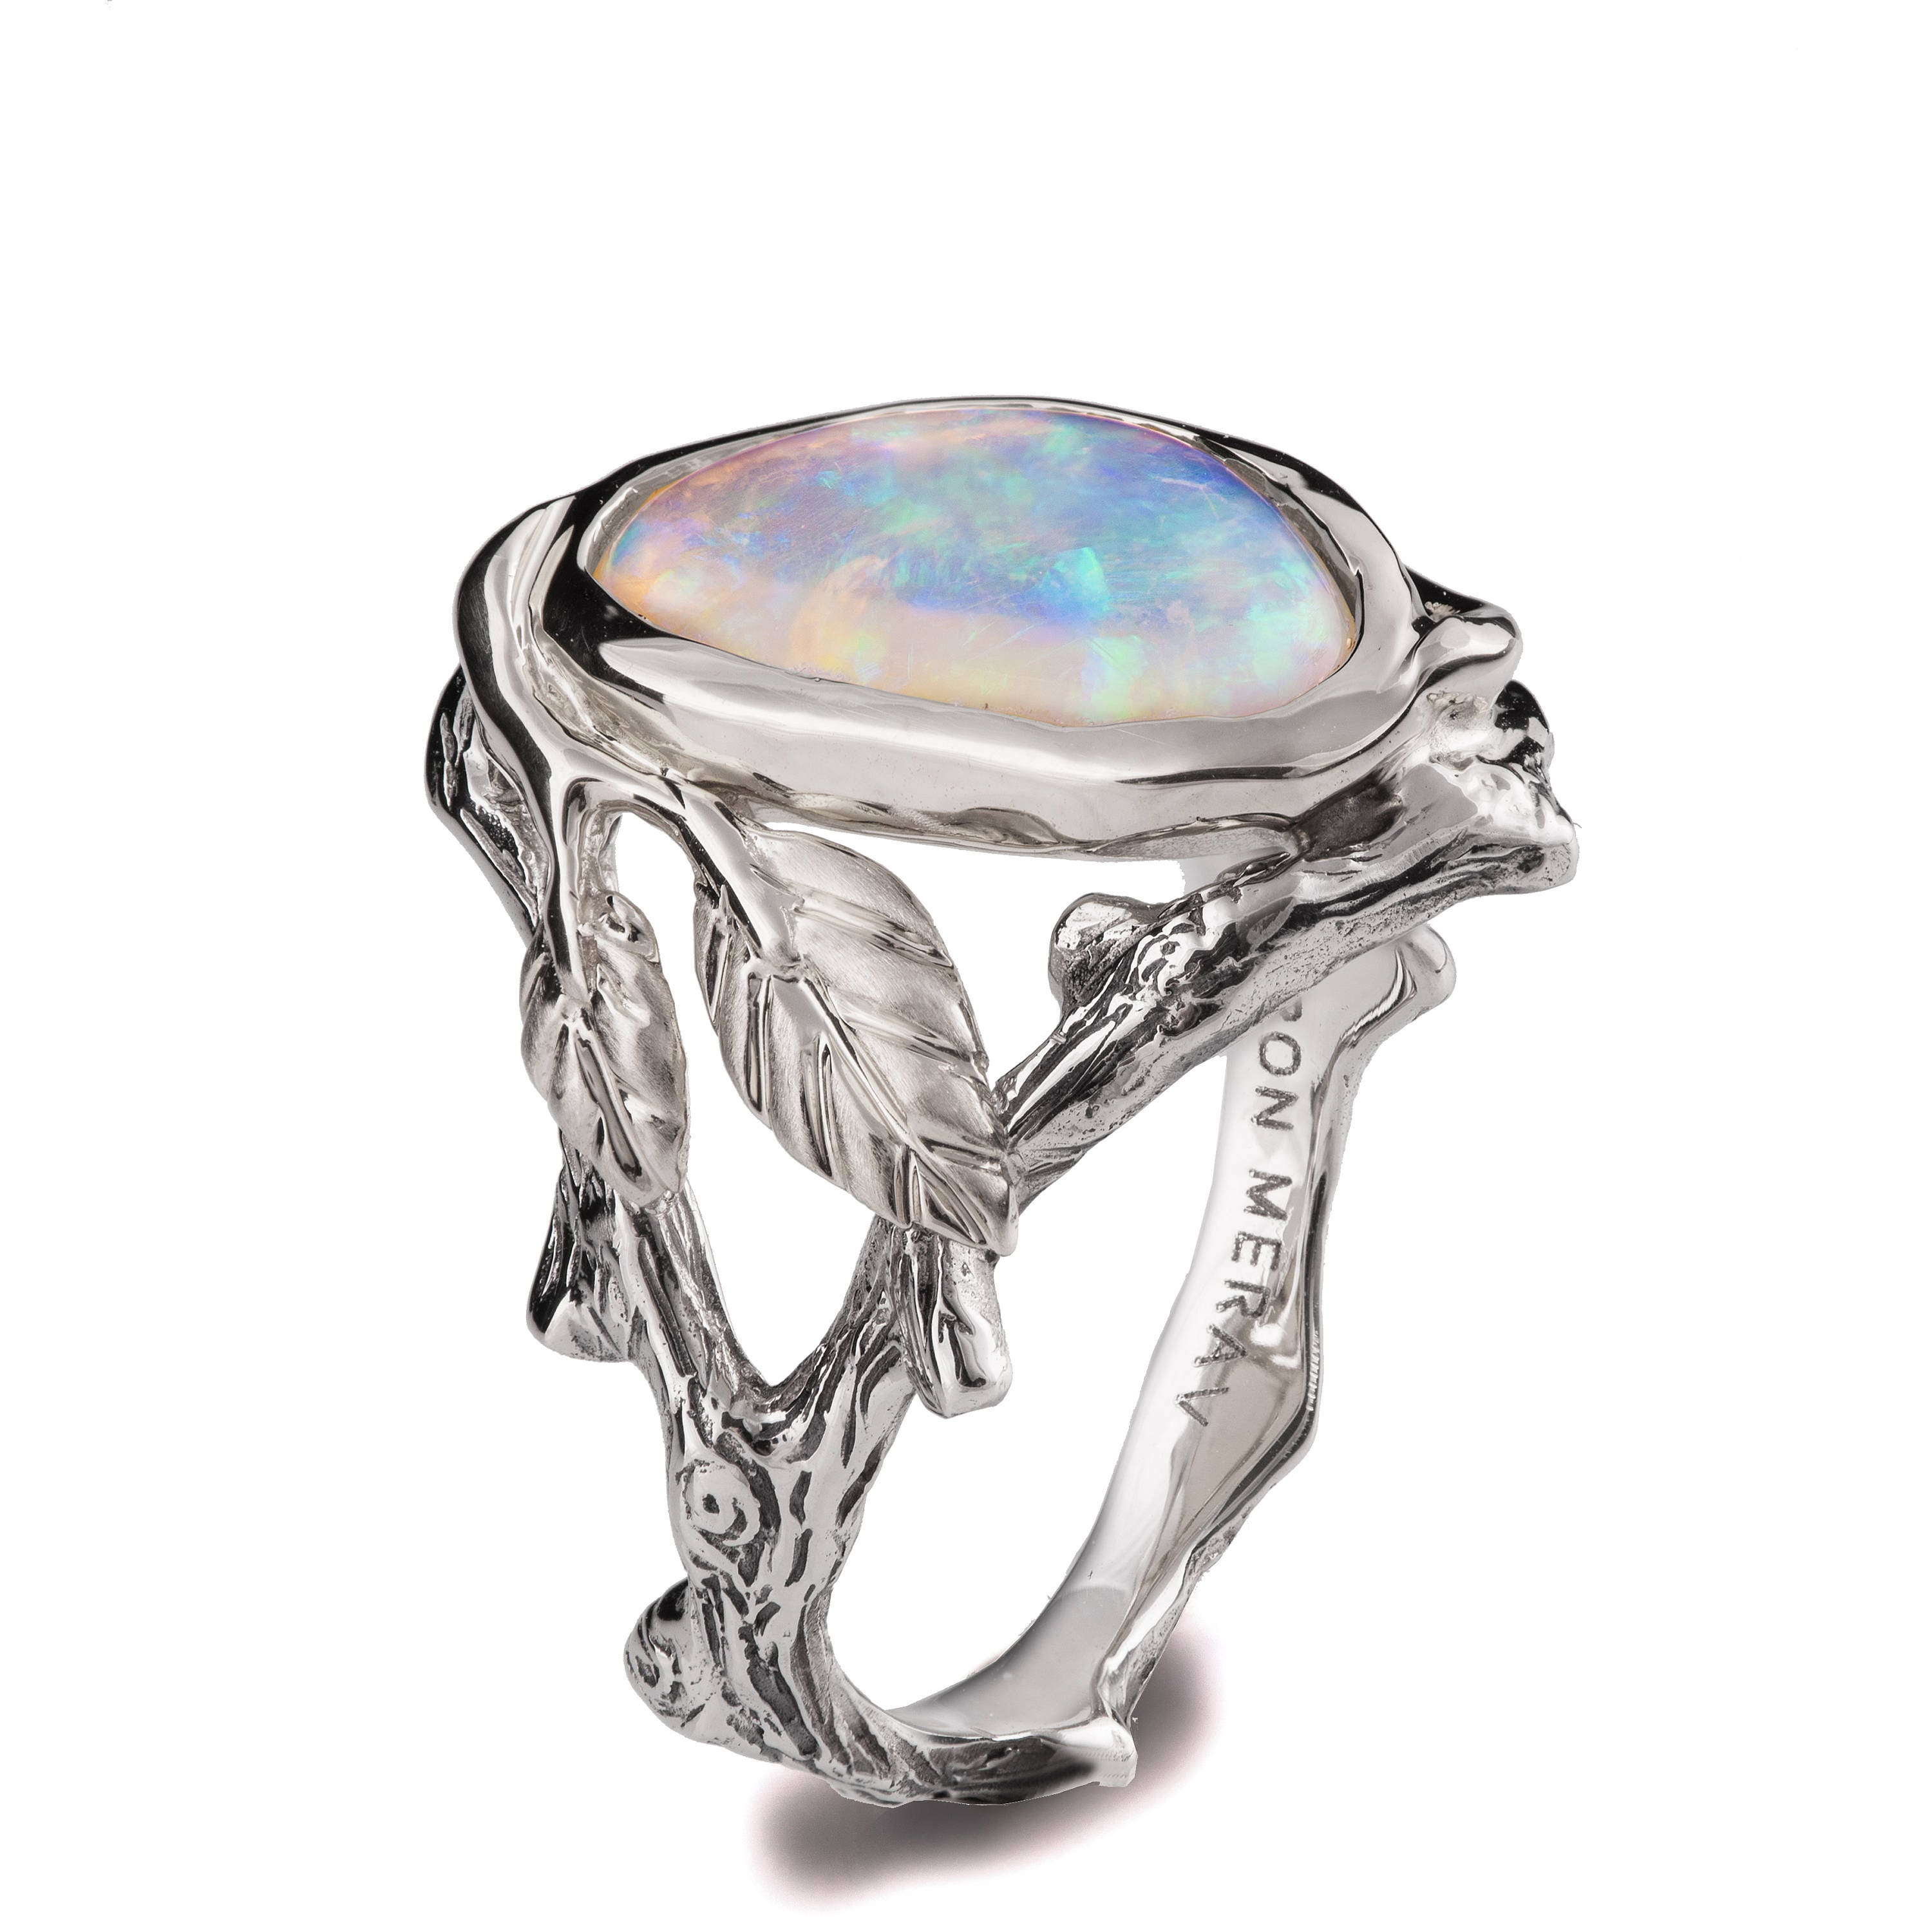 Twig and Leaf Engagement Ring 18K Two Tone Gold and Opal